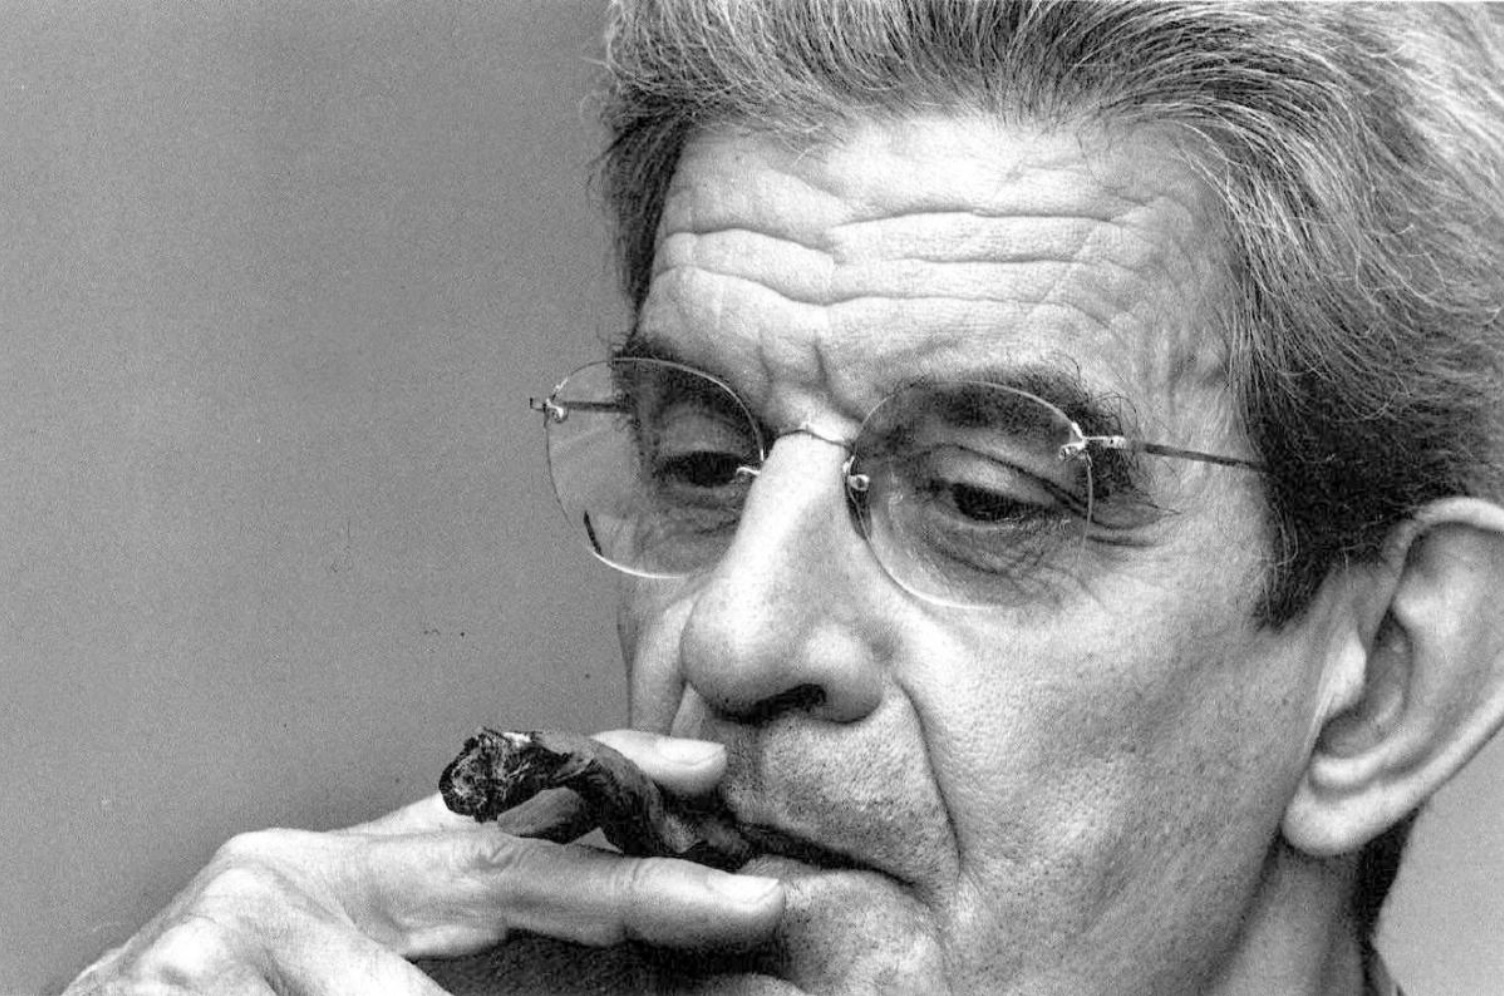 Jacques-lacan-critical-evaluations-in-cultural-theory-by-slavoj-zizek.jpg